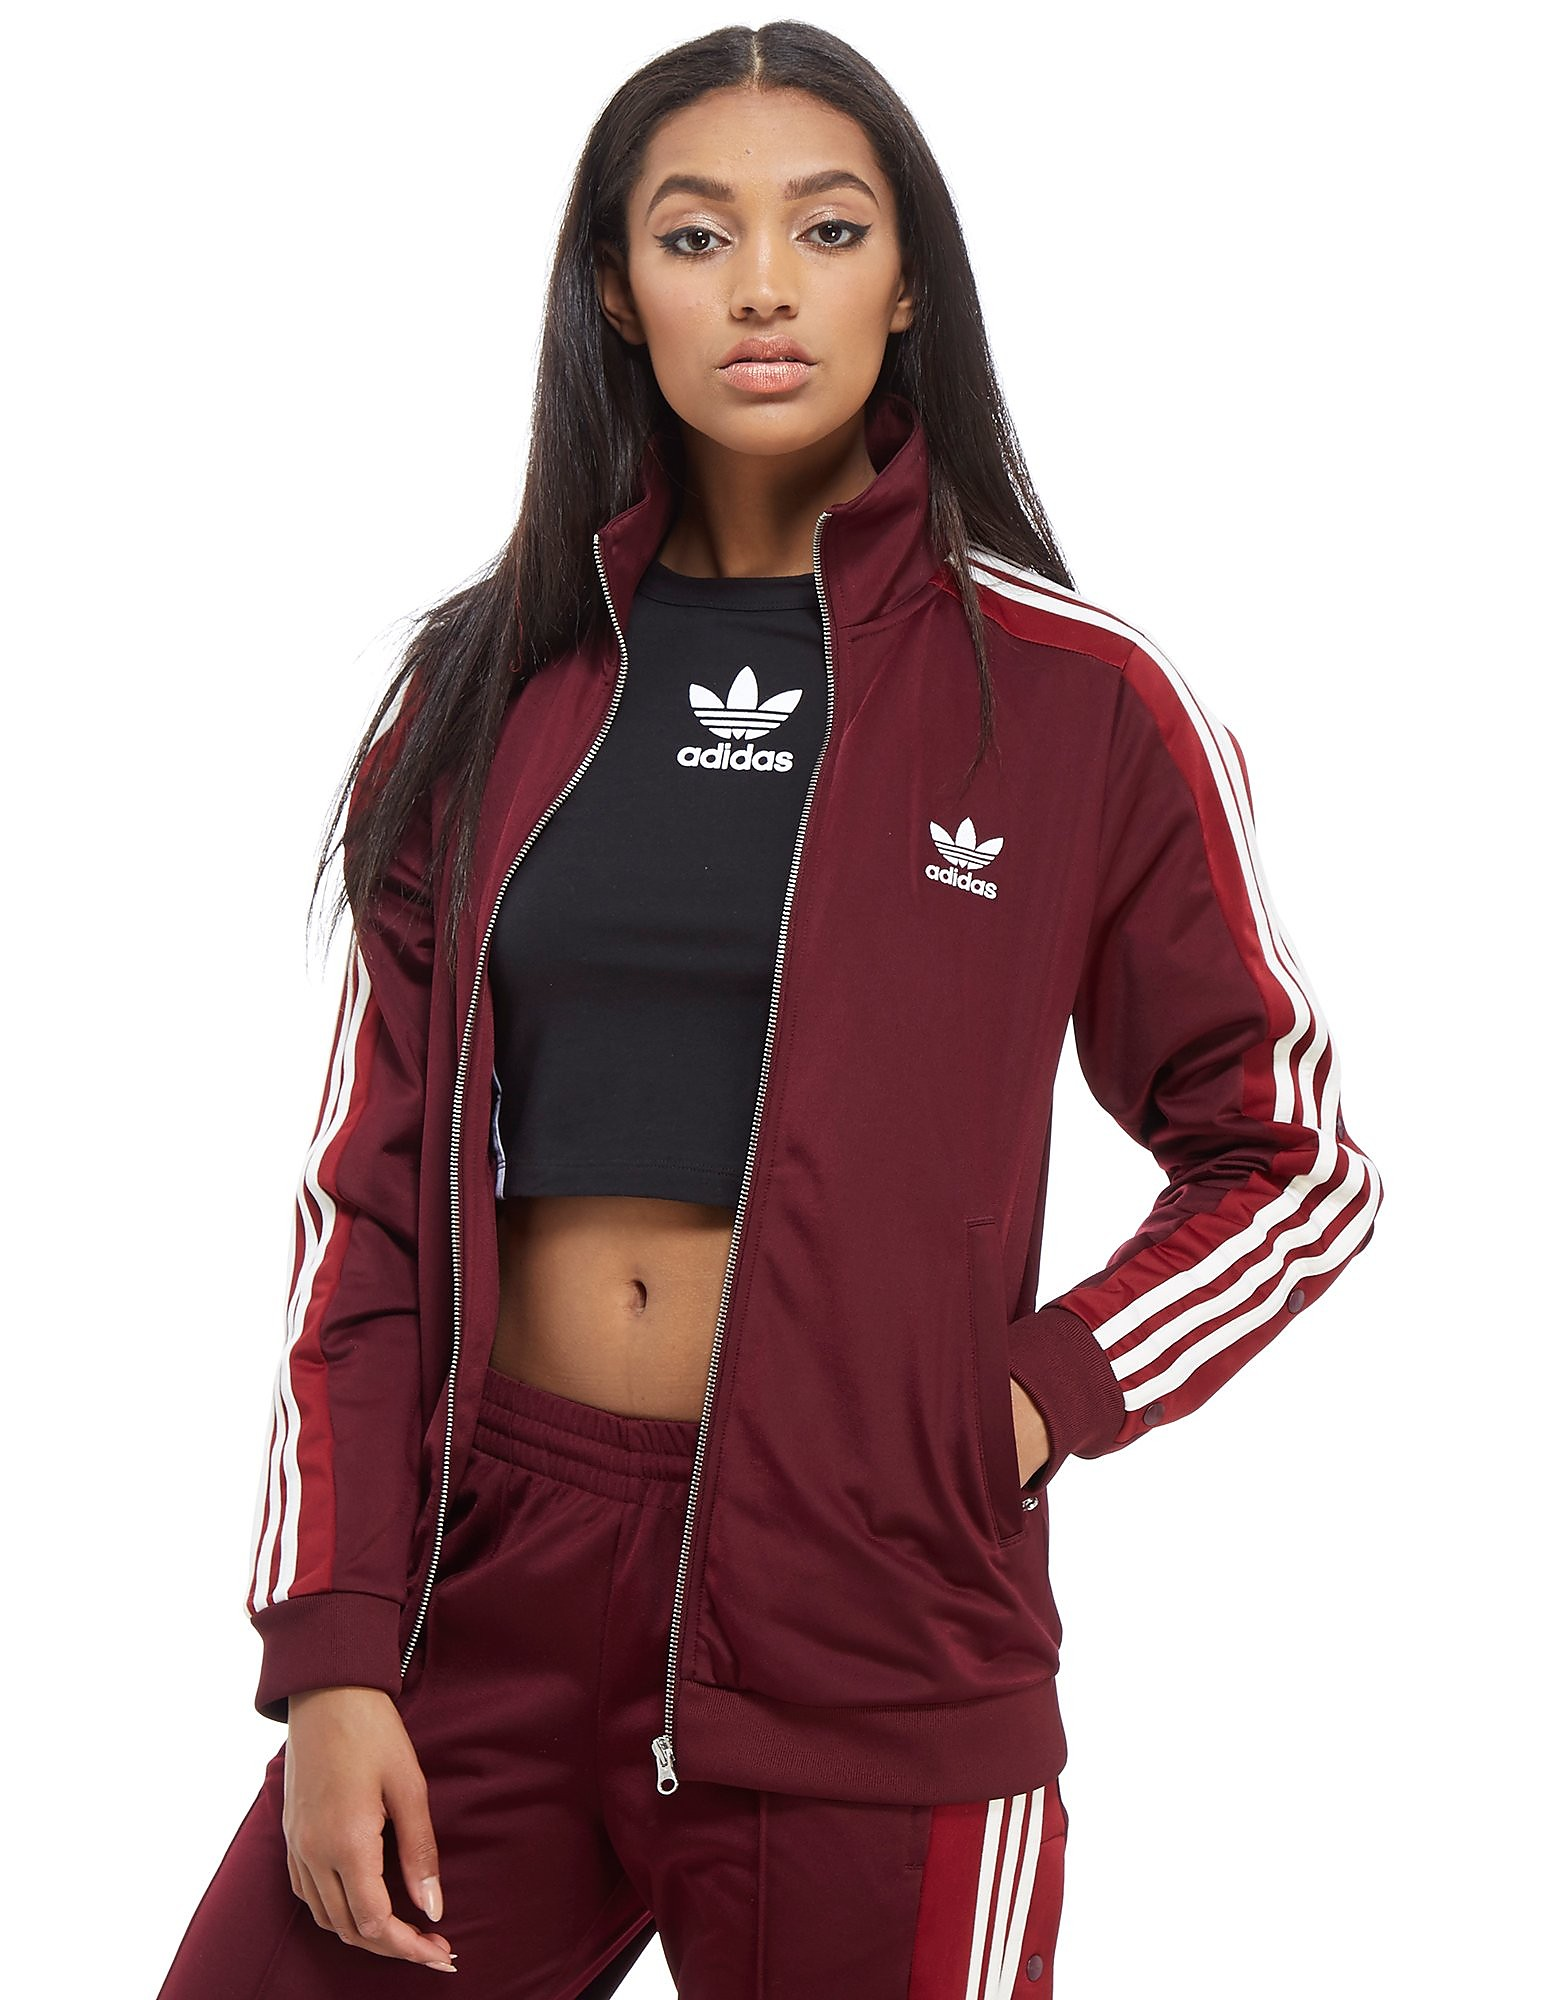 adidas Originals Adibreak Giacca Tuta